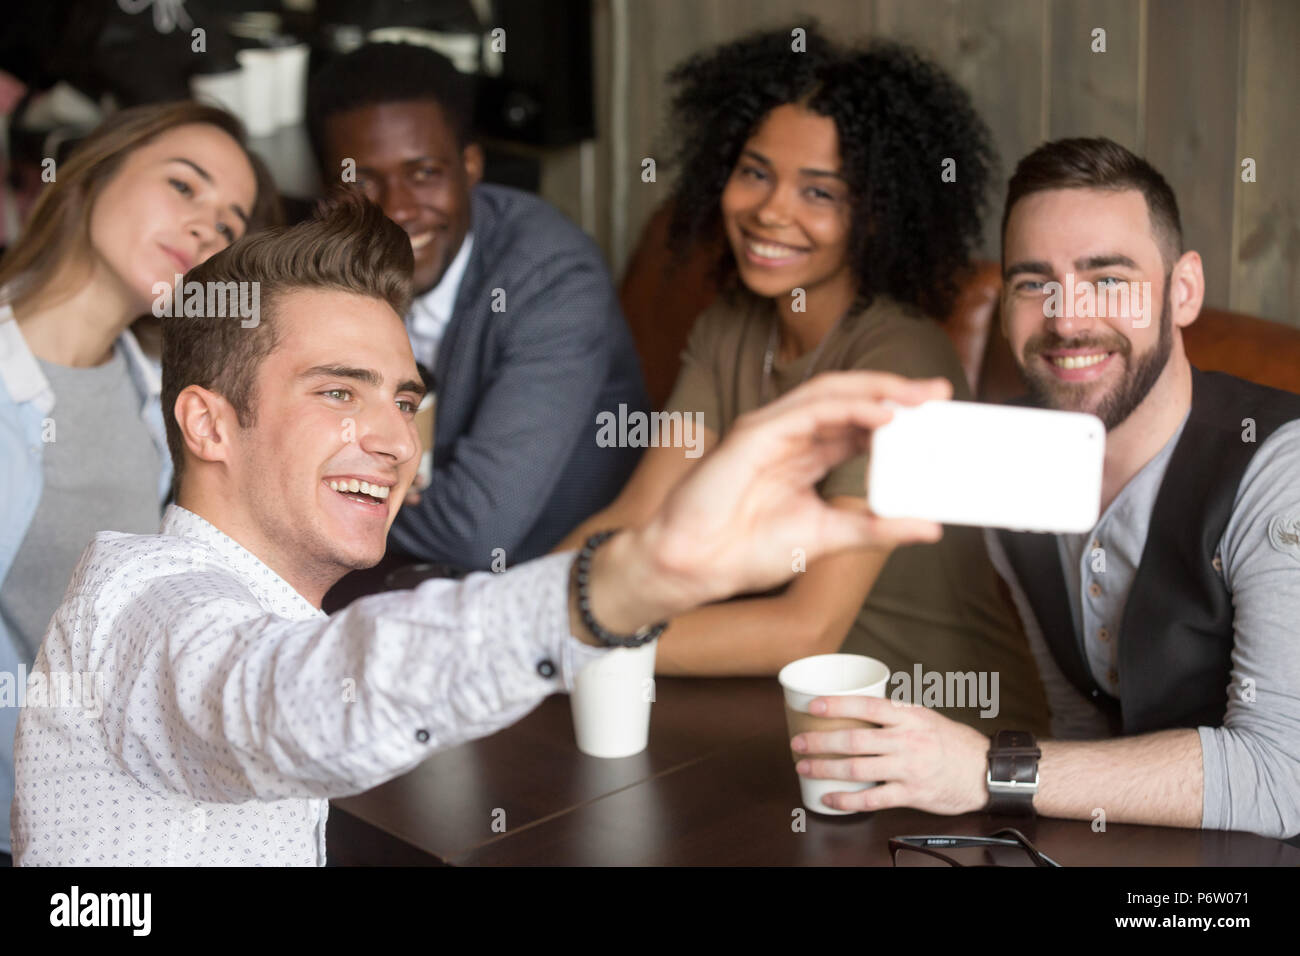 Diverse colleagues smiling for group photo resting in cafe - Stock Image